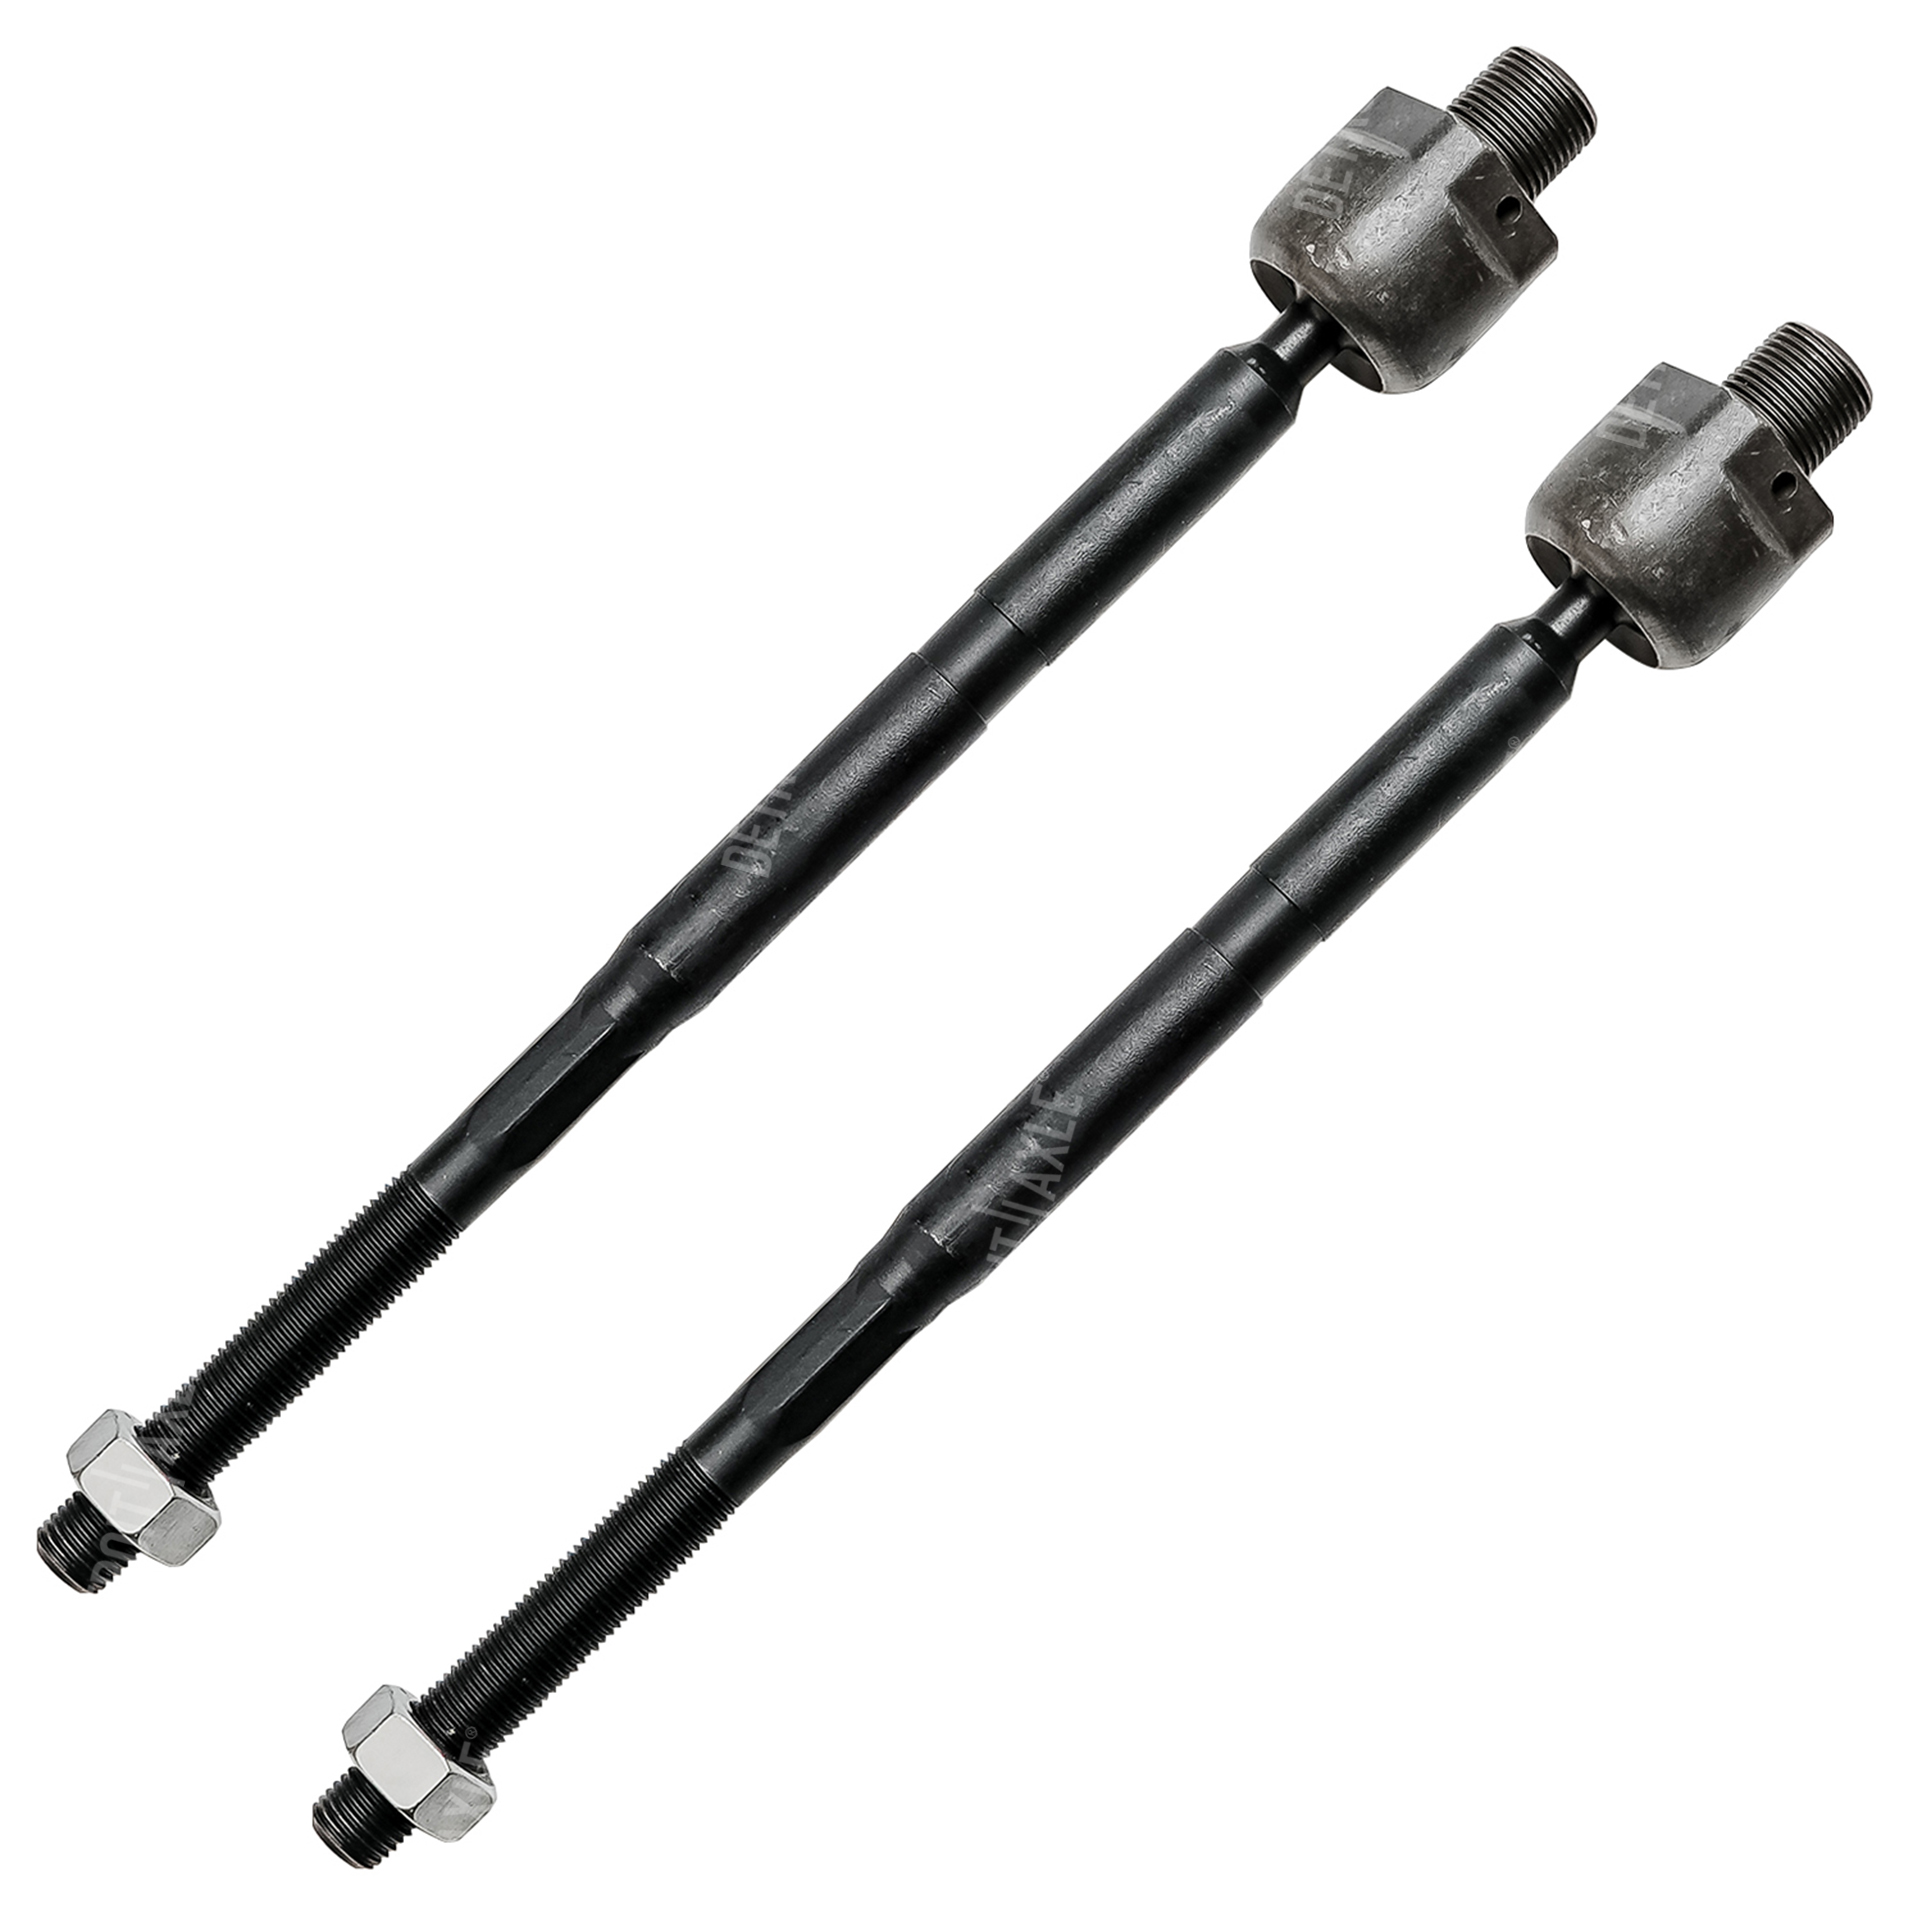 Both (2) Inner Tie Rod Ends Driver and Passenger Side for 2012-2015 Chevy Camaro V6 - [2012 Chevy Camaro 6.2L V8] - 2010-2011 Chevy Camaro